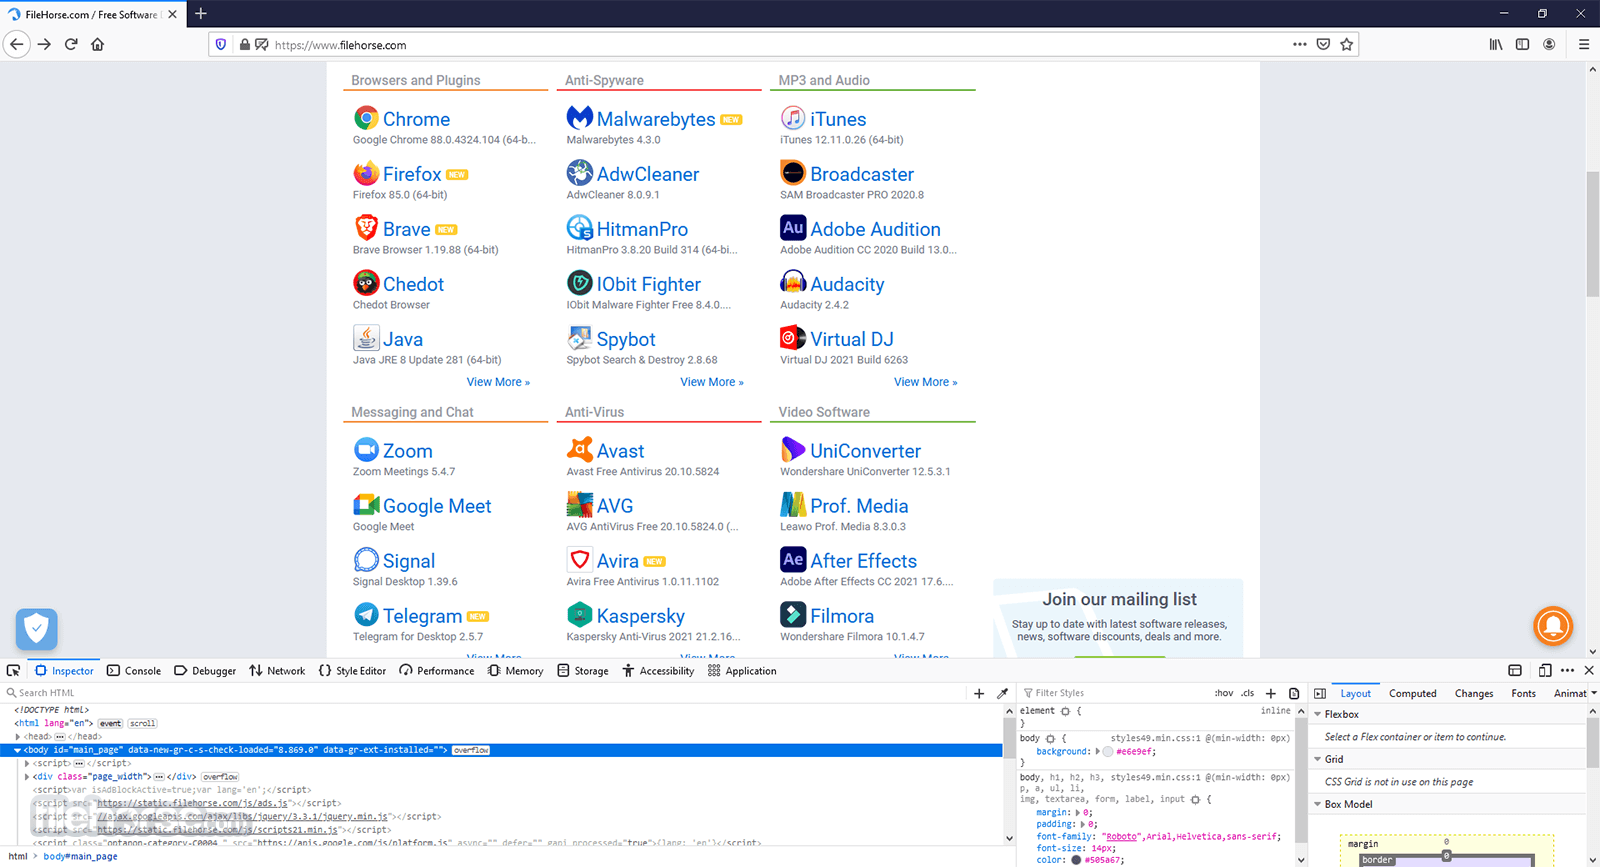 Firefox 56.0.1 (32-bit) Screenshot 2